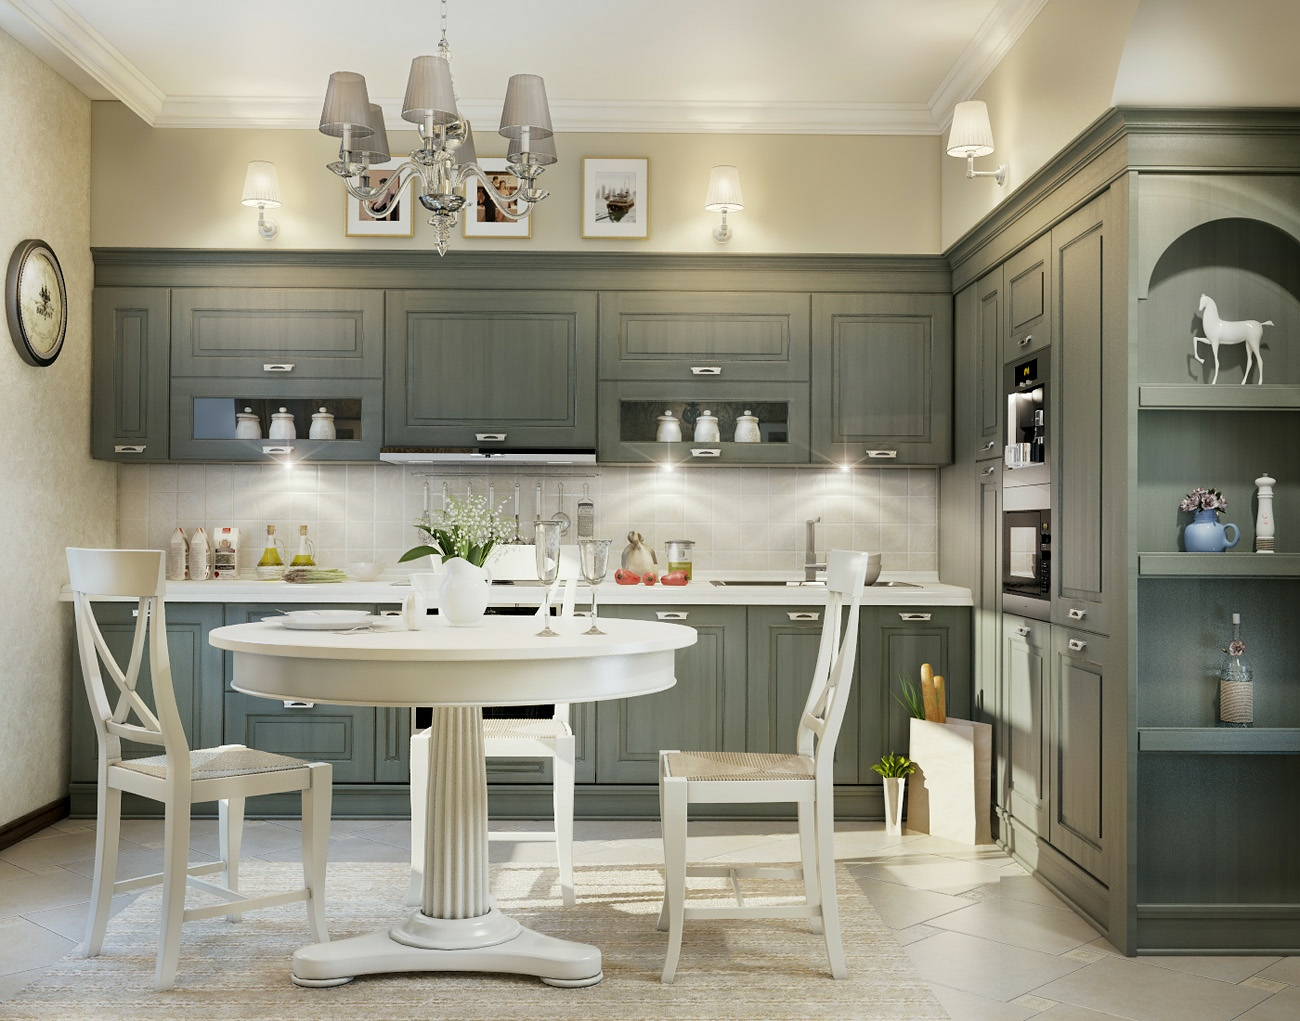 Grey traditional kitchen interior design ideas for Kitchen inspiration ideas